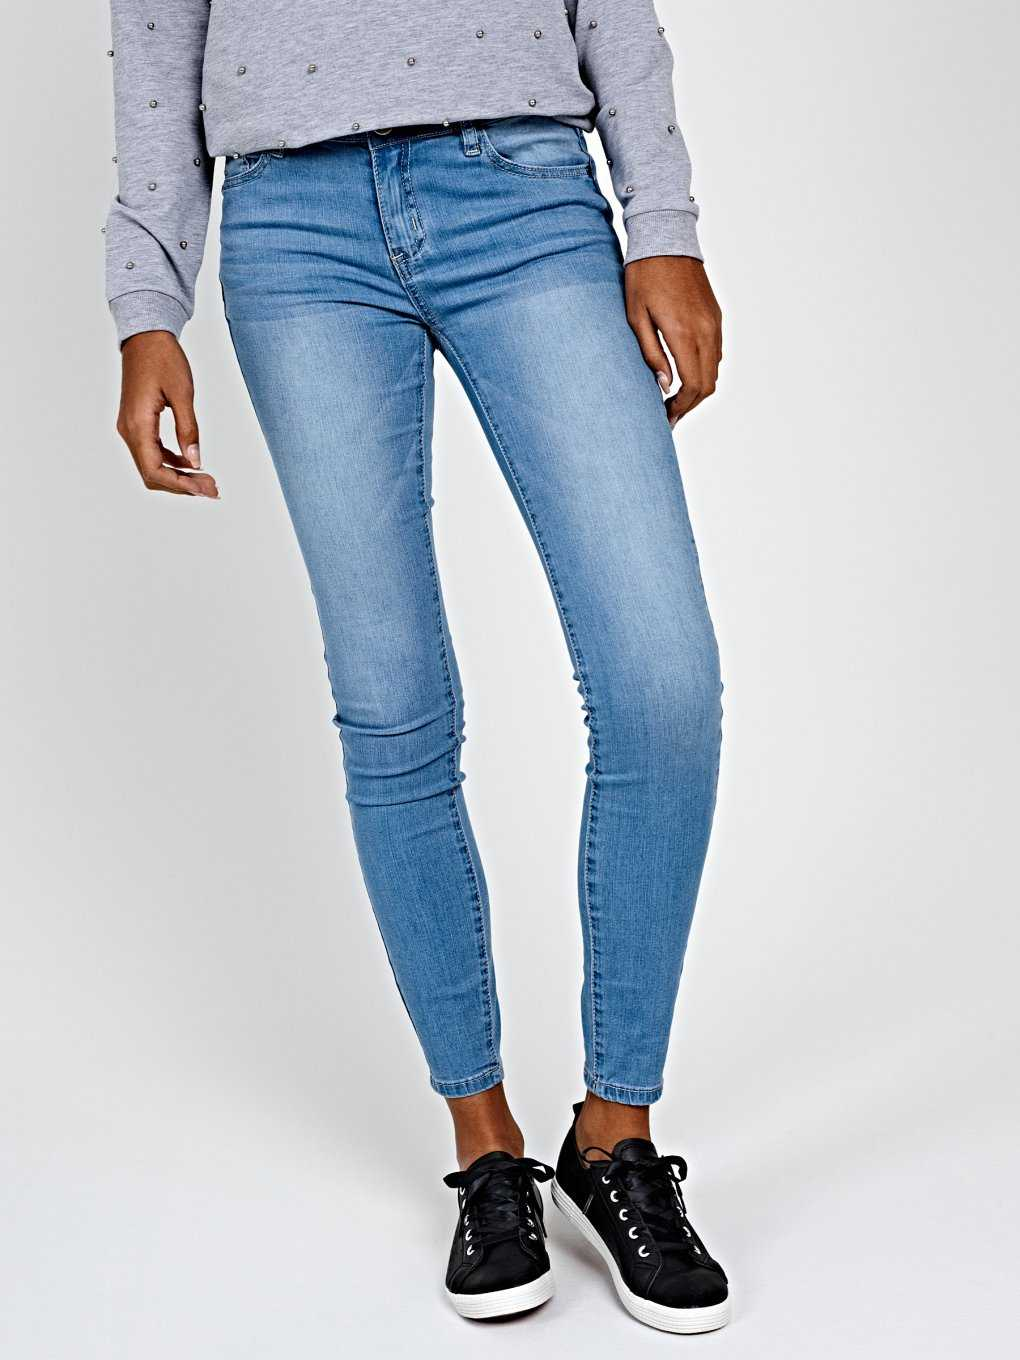 BASIC SKINNY JEANS IN LIGHT BLUE WASH